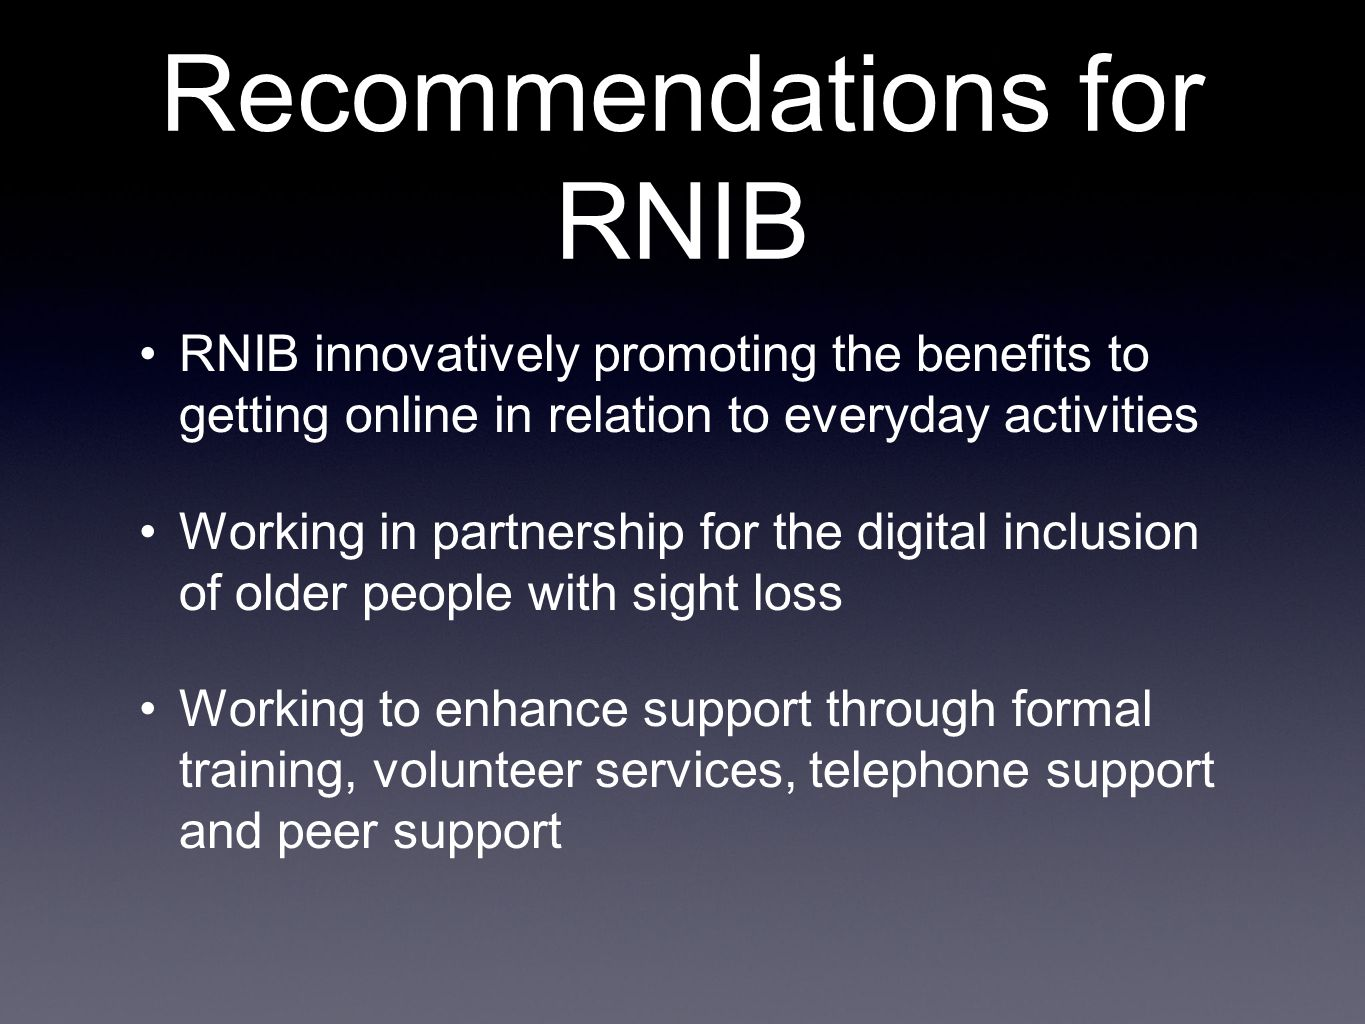 Recommendations for RNIB RNIB innovatively promoting the benefits to getting online in relation to everyday activities Working in partnership for the digital inclusion of older people with sight loss Working to enhance support through formal training, volunteer services, telephone support and peer support